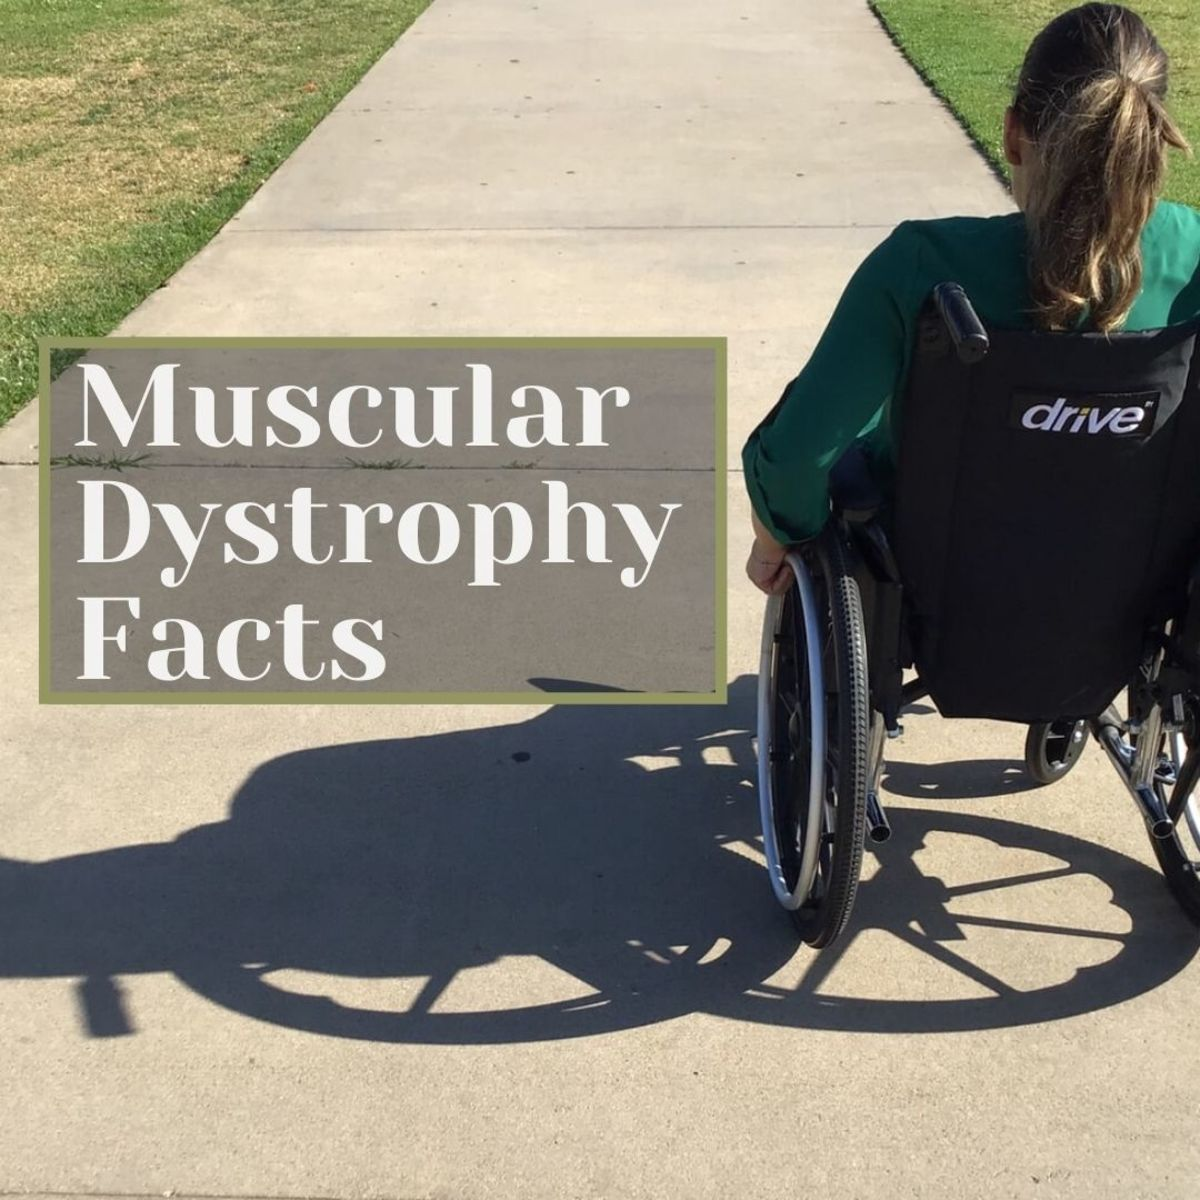 What Is Muscular Dystrophy? Facts and Statistics